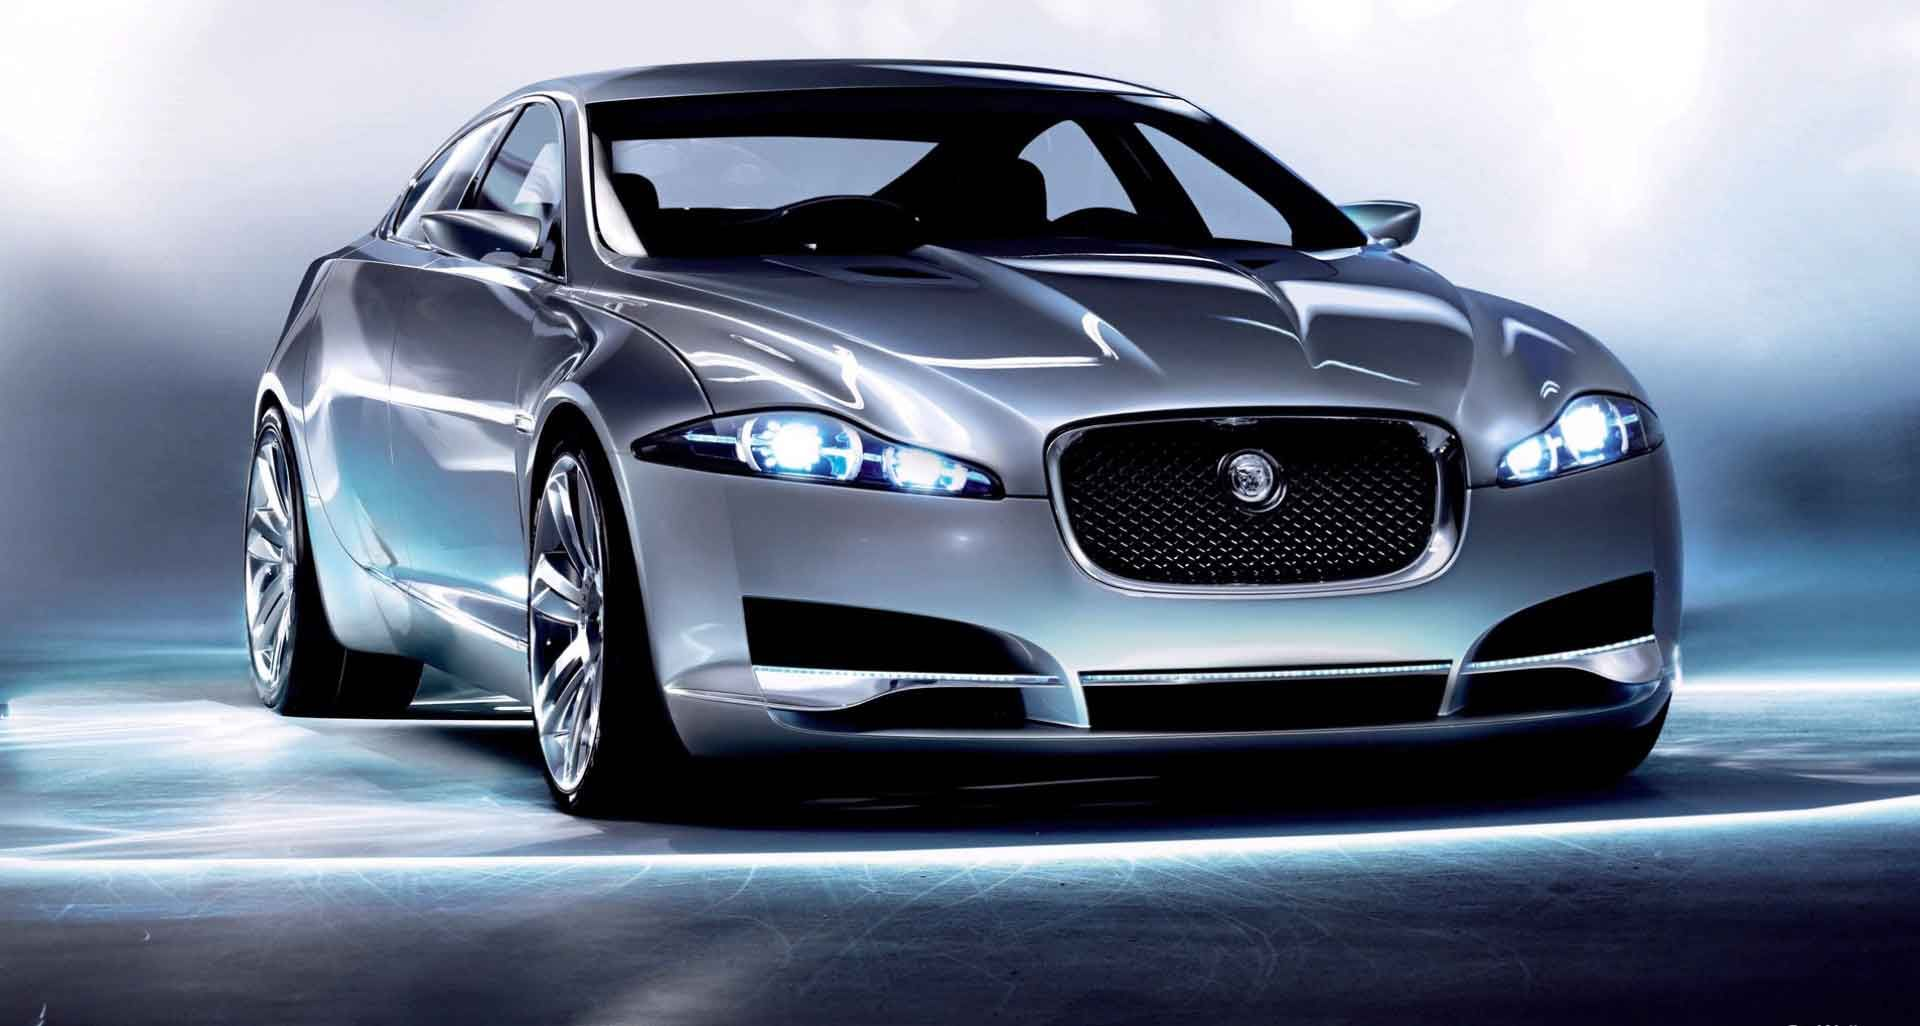 jaguar front view hd wallpaper